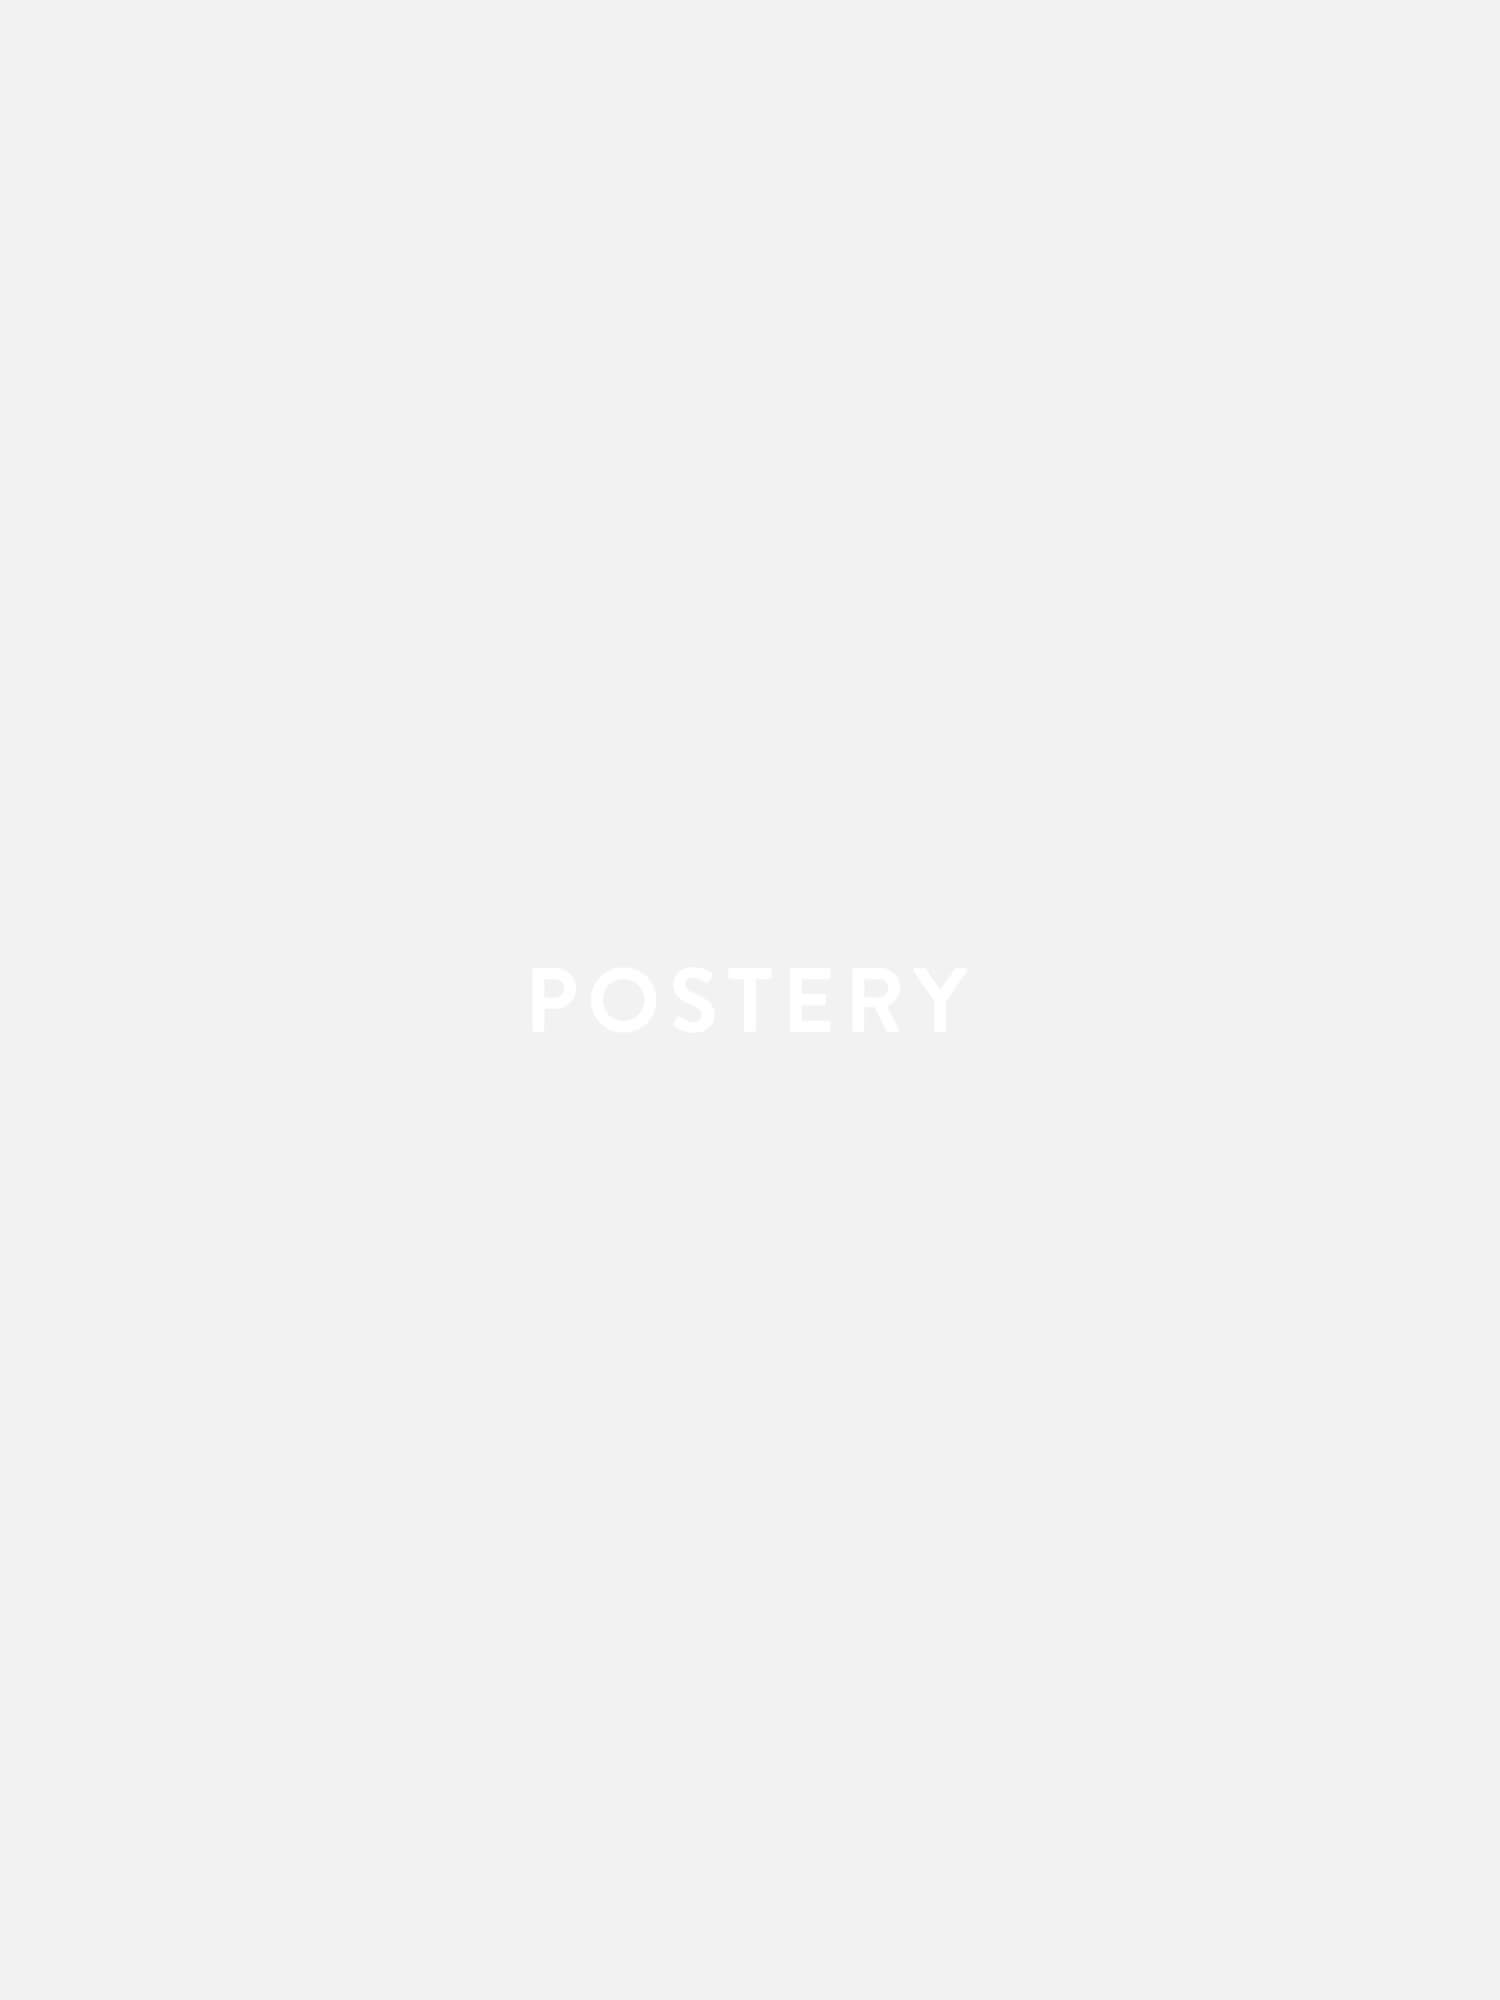 Dear New York Poster